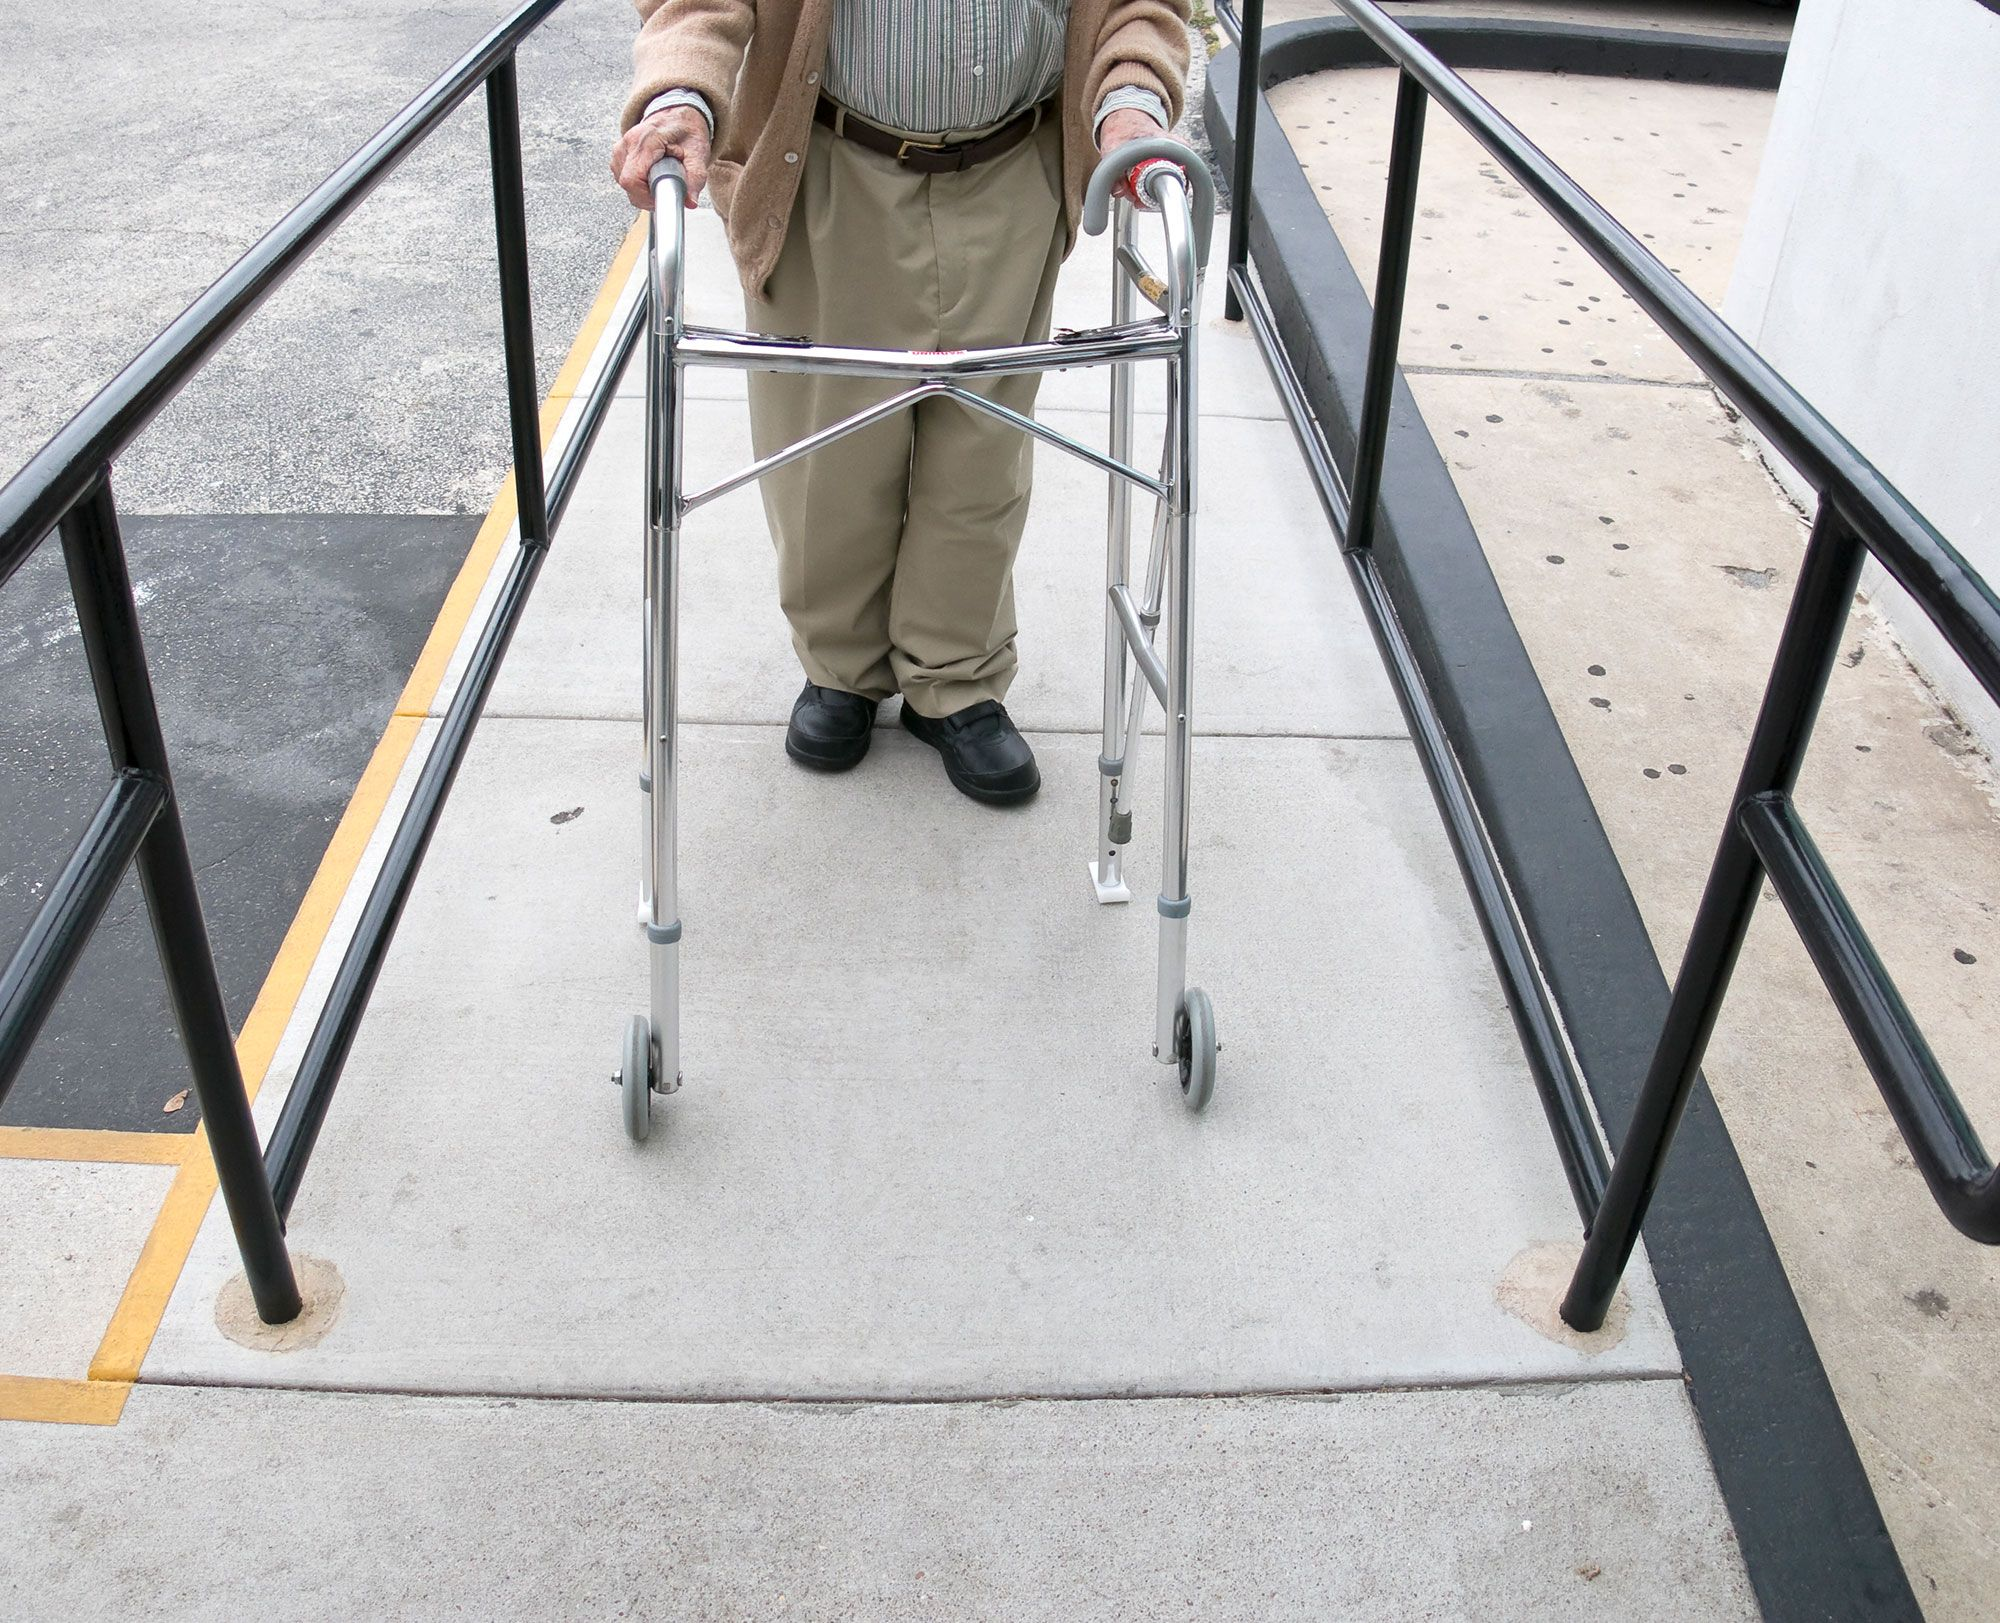 Elderly man with a walker walking up a ramp